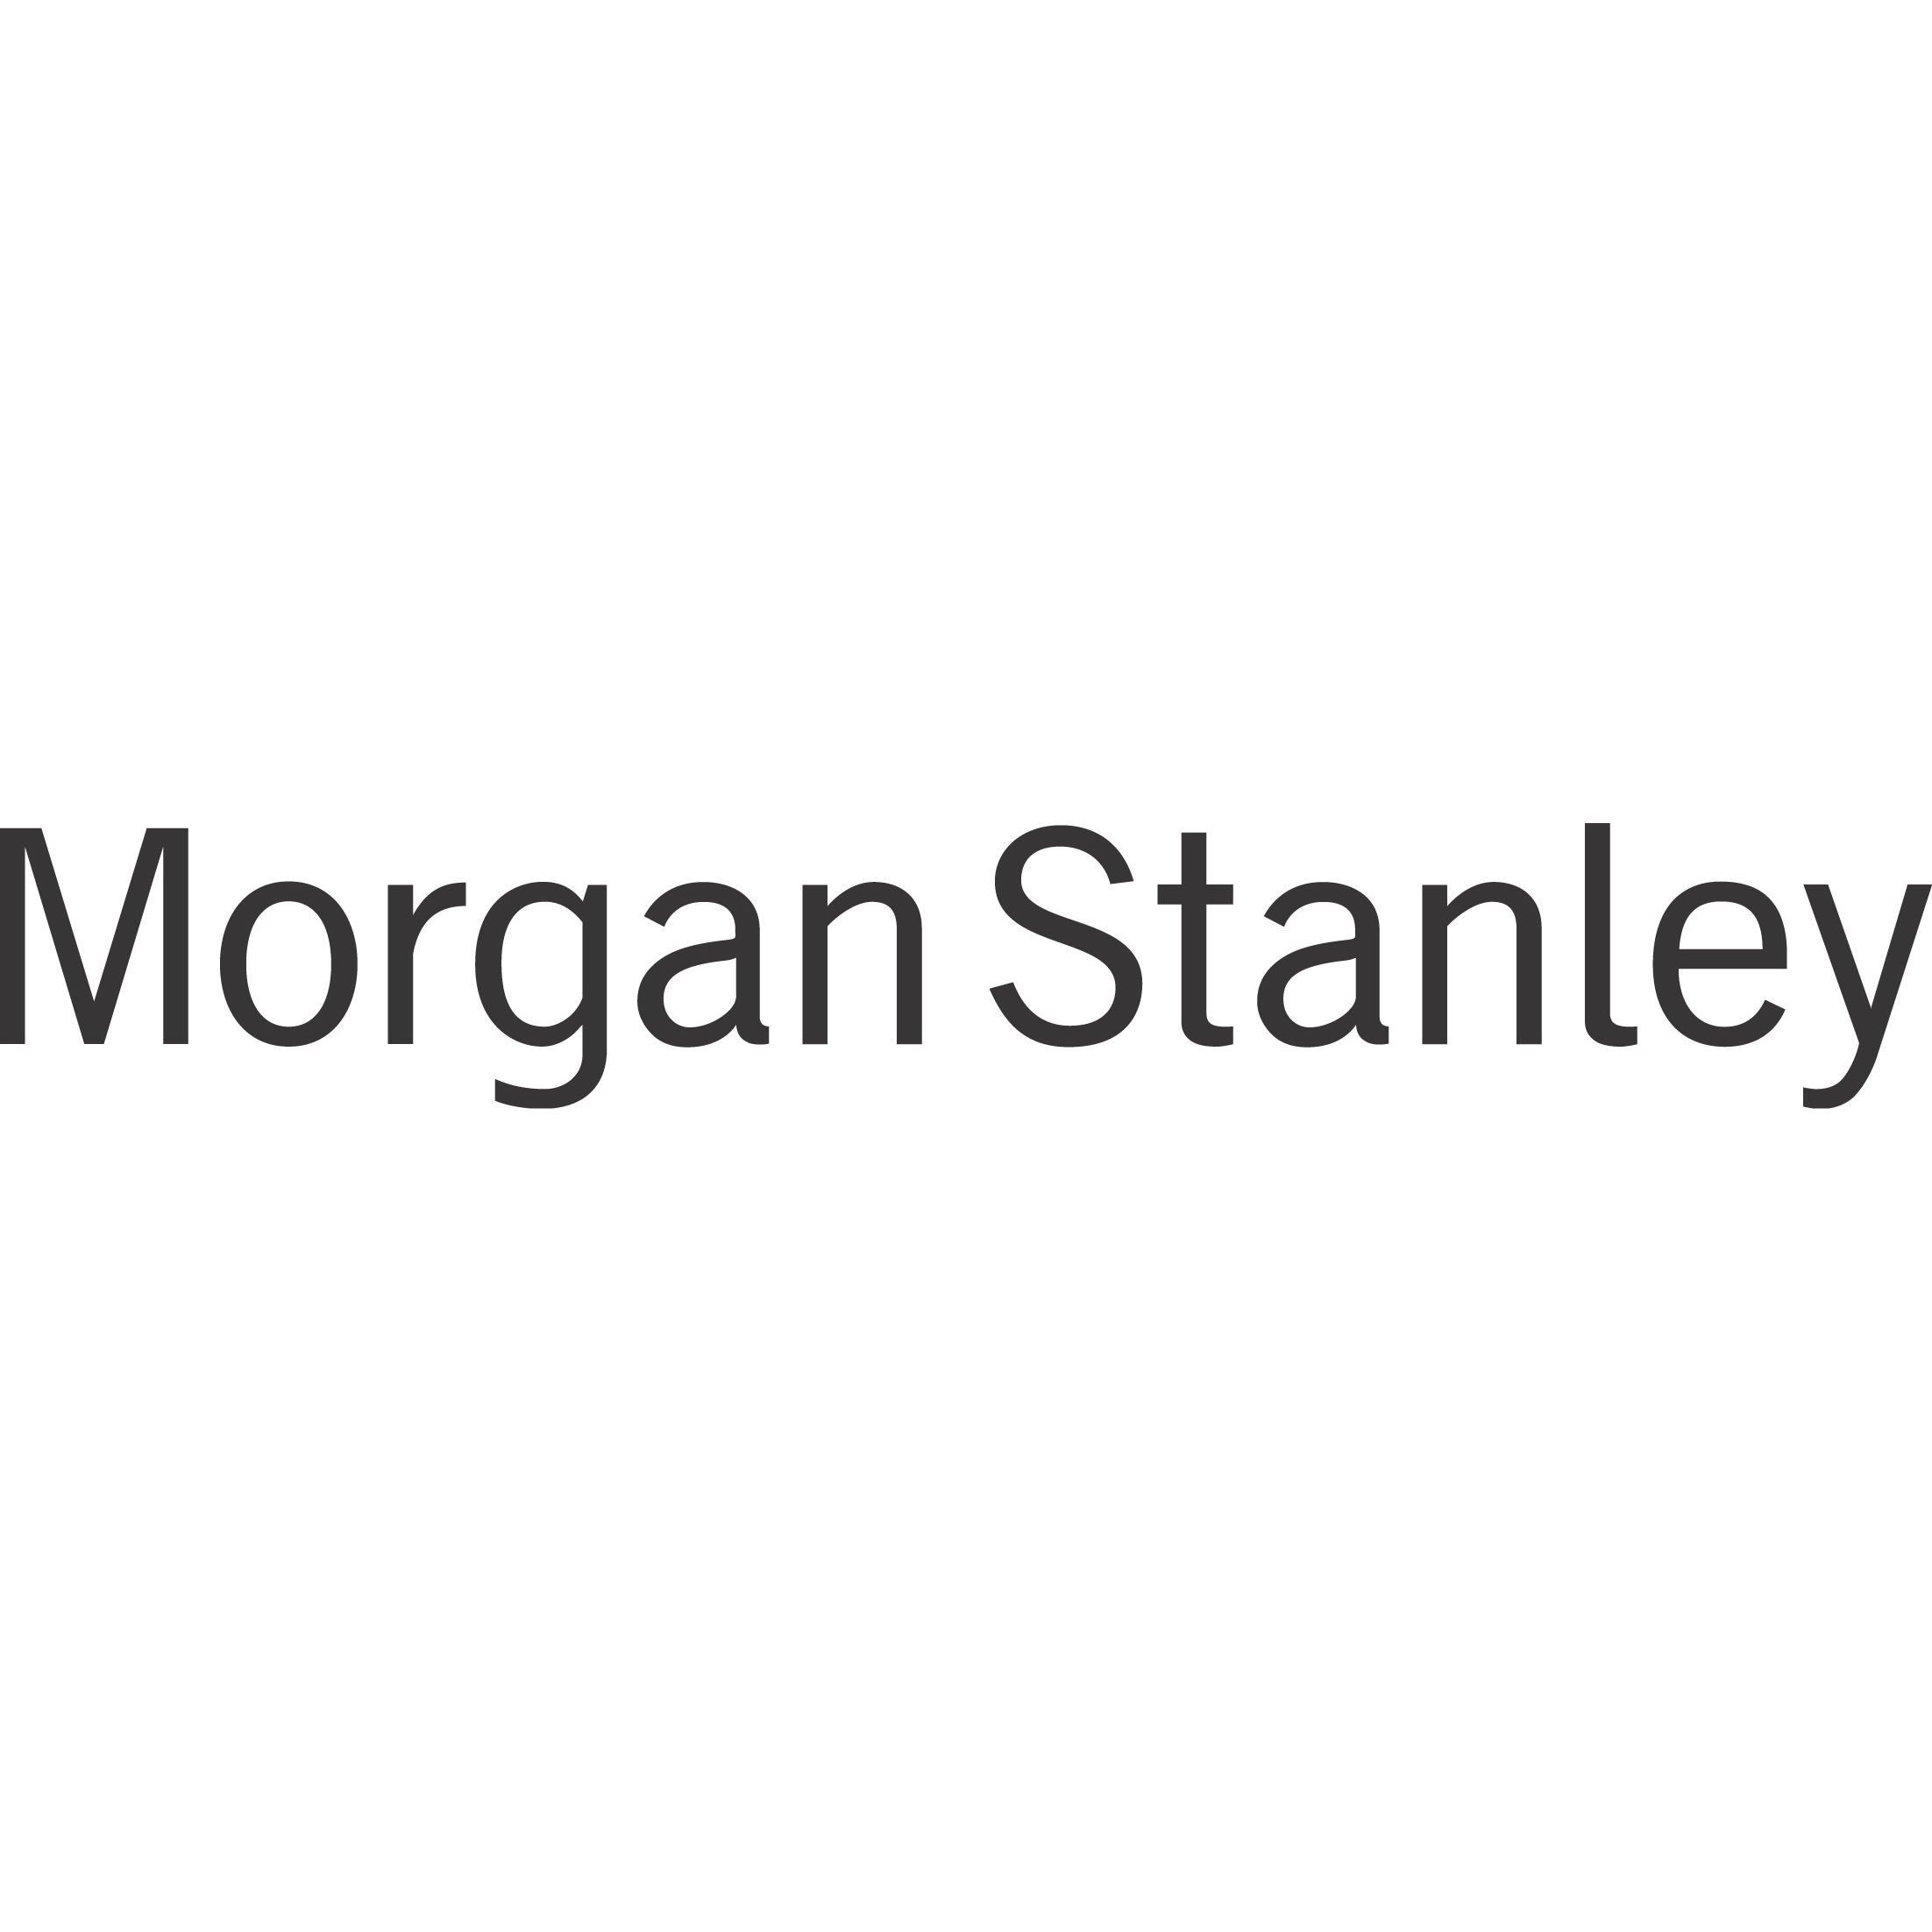 David W Roth - Morgan Stanley | Financial Advisor in Indianapolis,Indiana